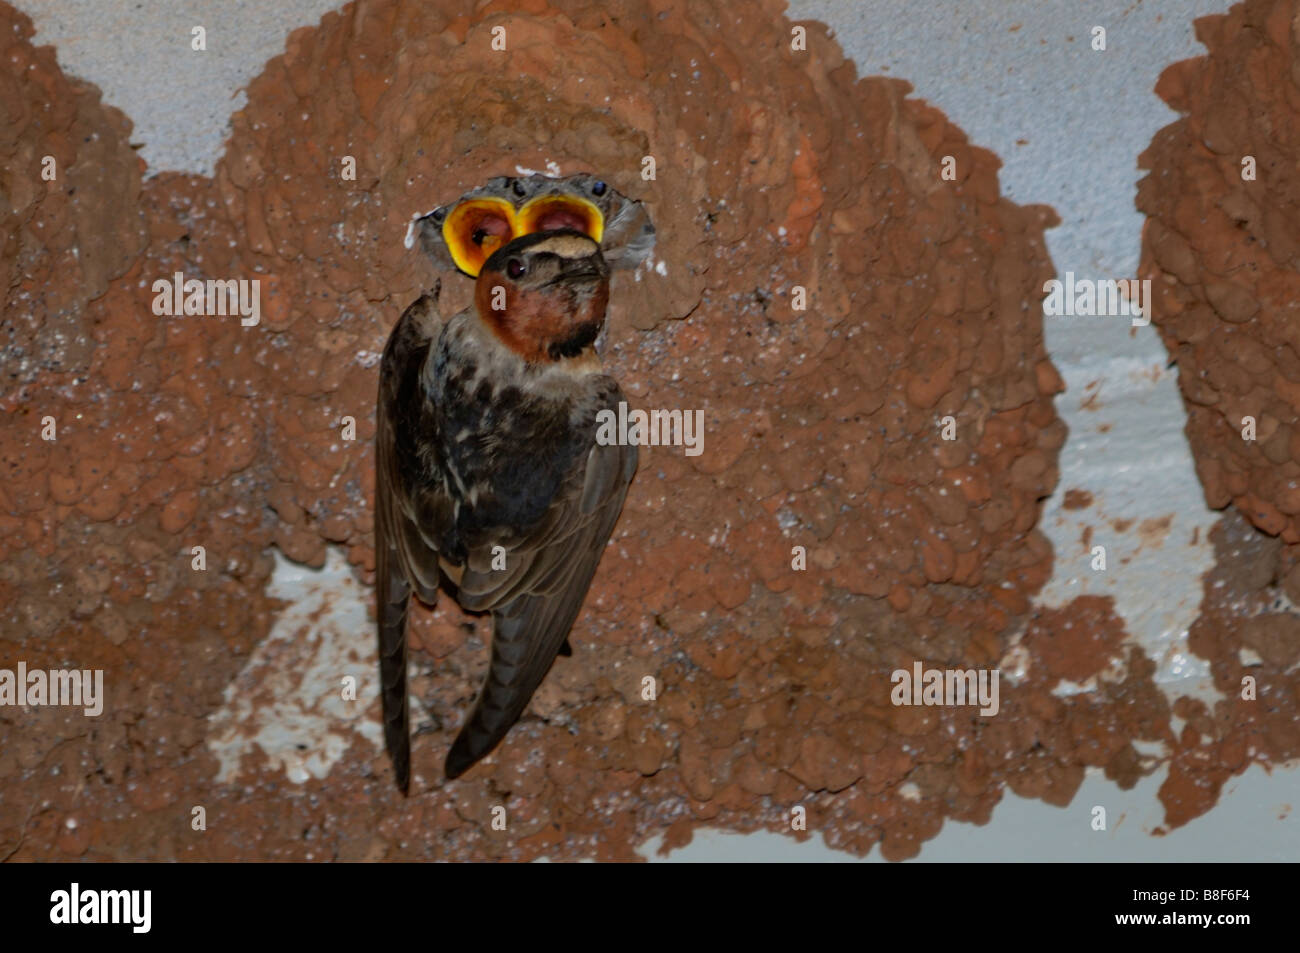 Cave Swallow, Petrochelidon fulva, nesting sites under a bridge in the countryside of Oklahoma, USA. - Stock Image